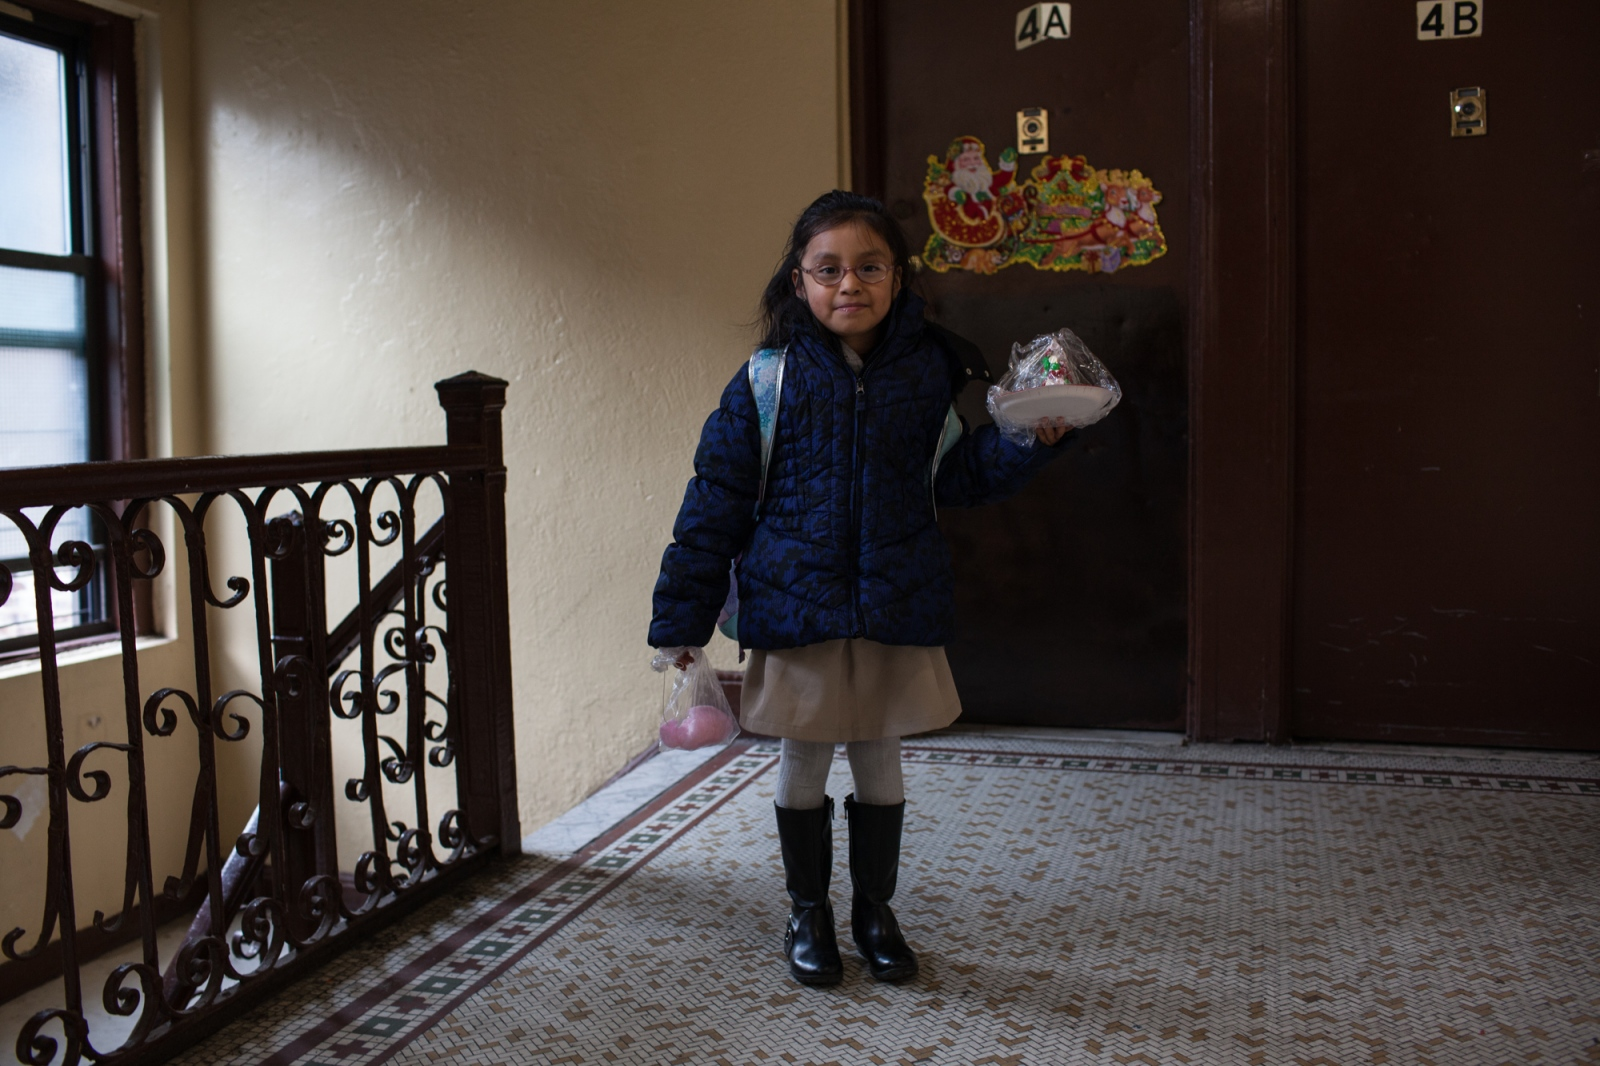 Yaleiny, is the oldest daughter of Zenaida, and likes to read books in Spanish and English. Her mother also teaches her to speak her language, the Tlapaneco, because her grandparents do not speak Spanish. Bronx, NY